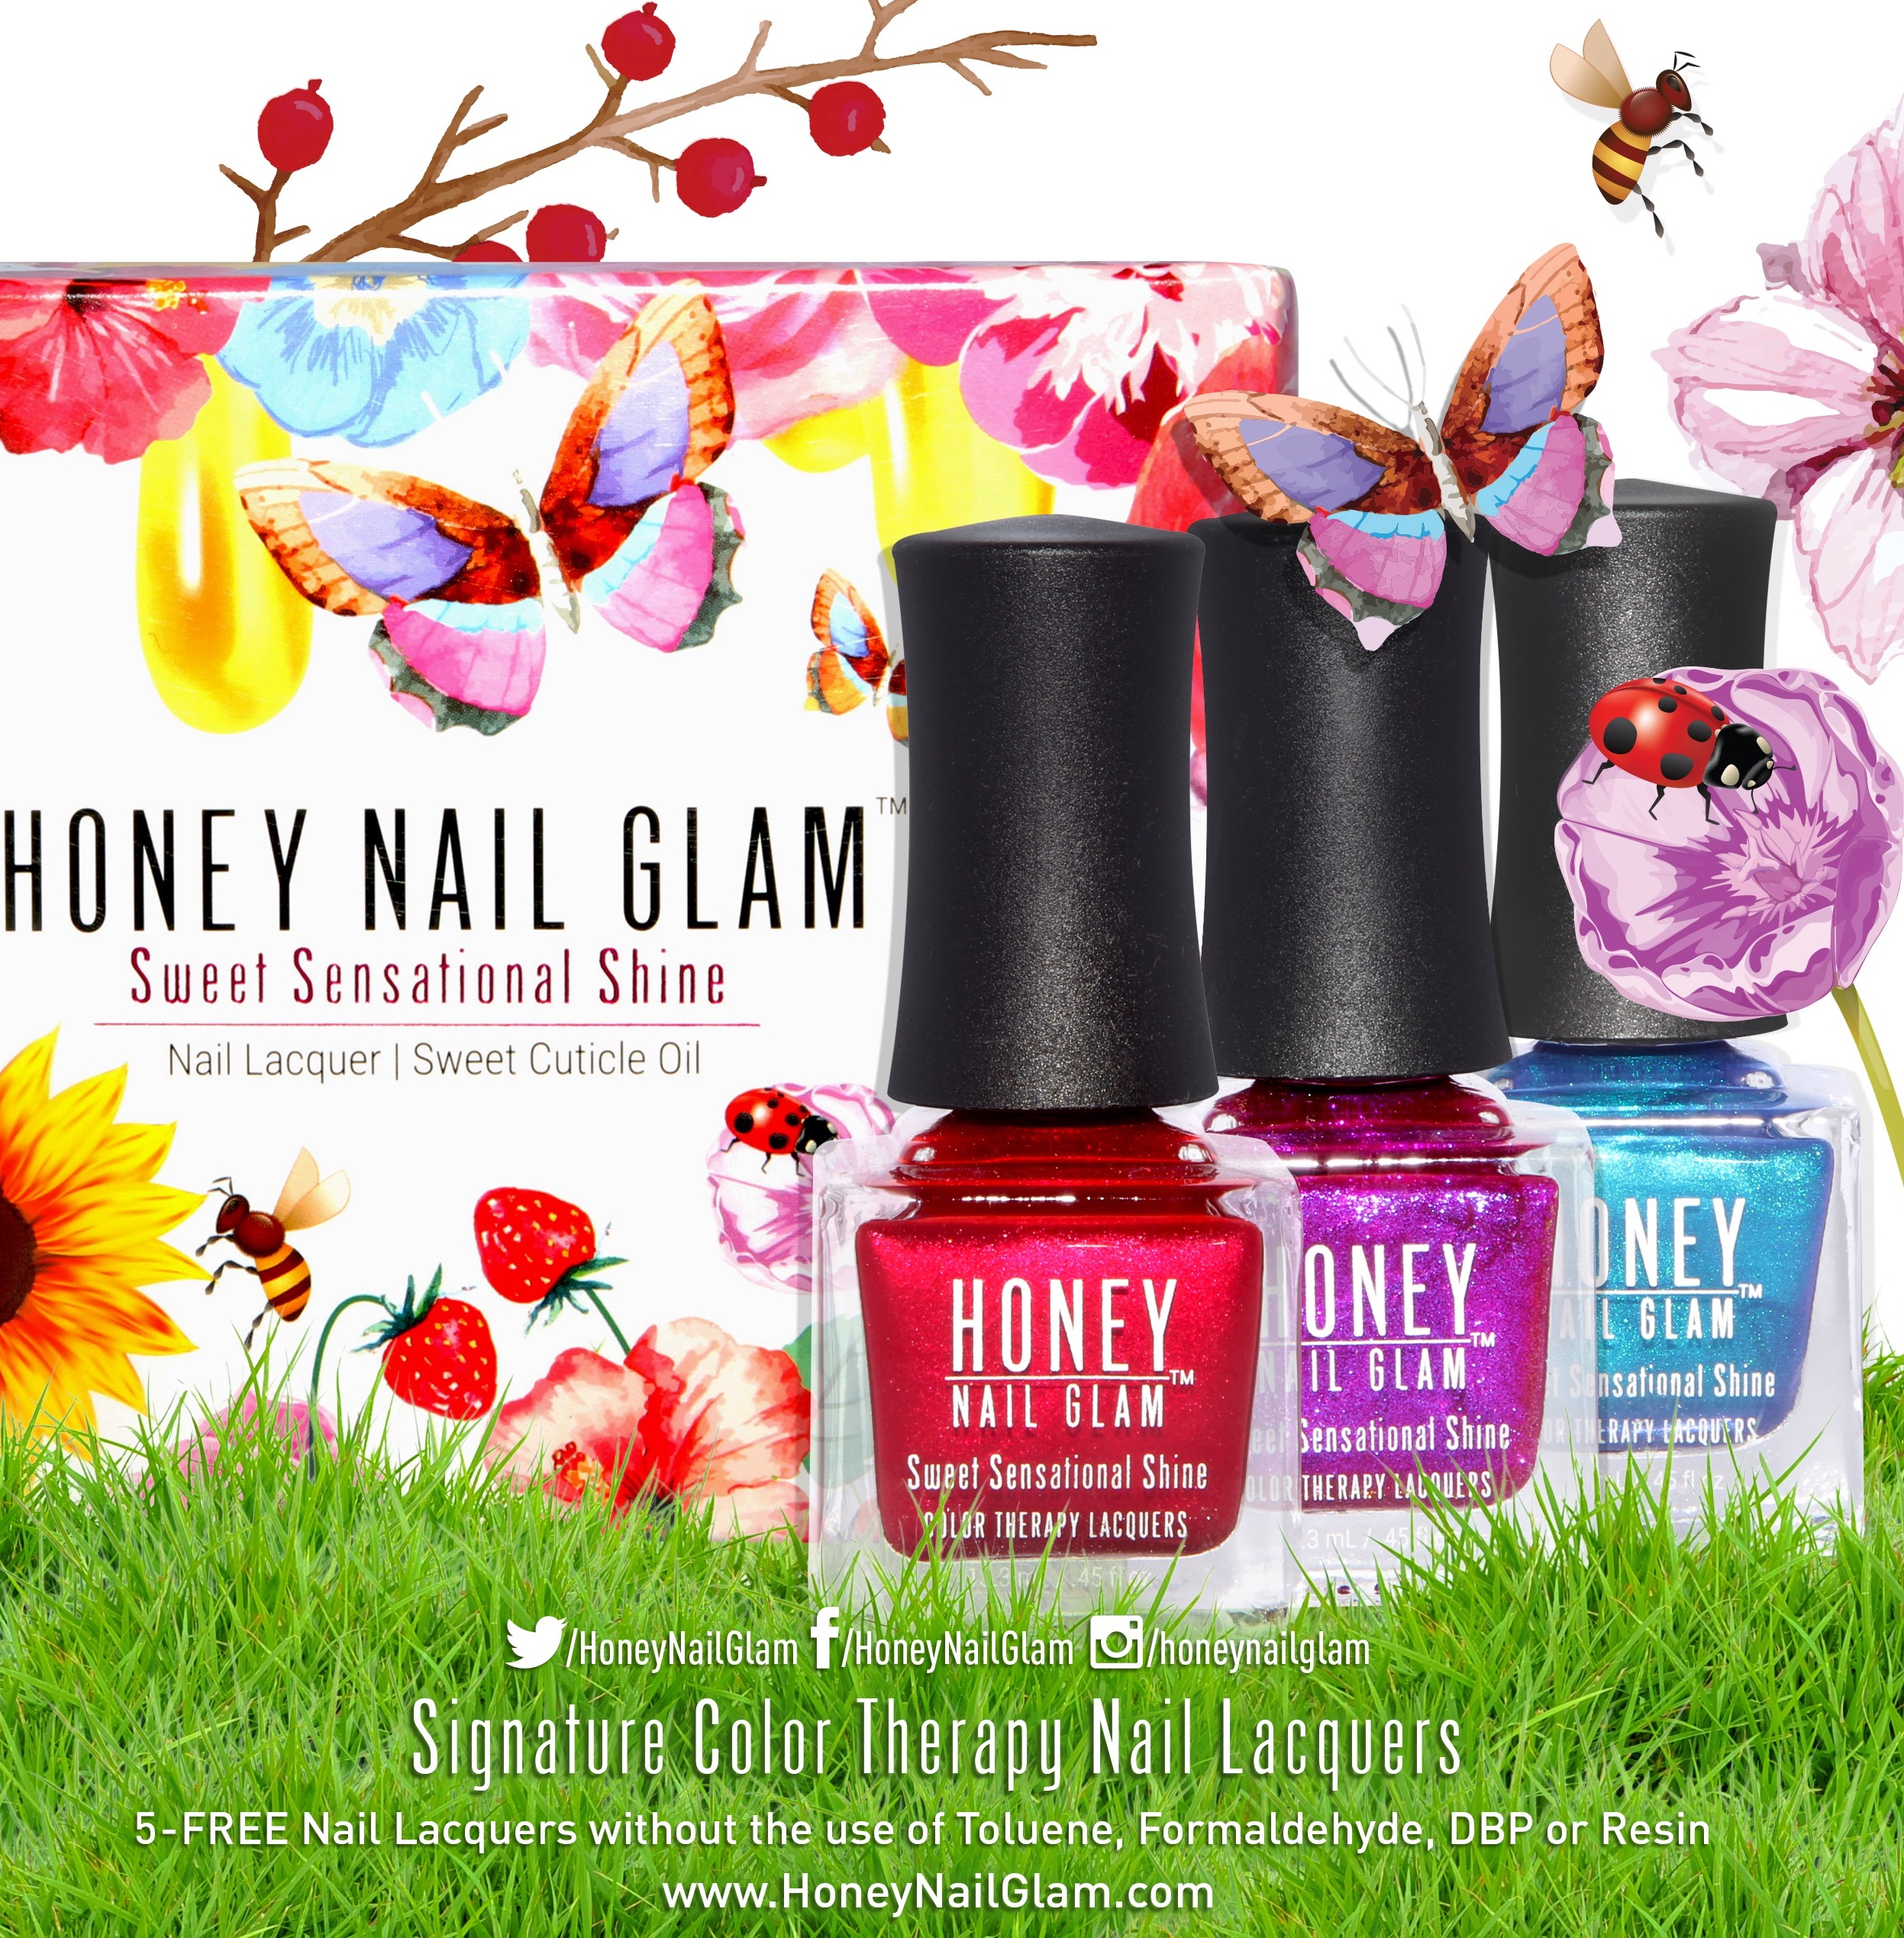 SWEET SENSATIONAL NAIL LACQUER GIFT BOXES TO GO - HoneyNailGlam Nail ...